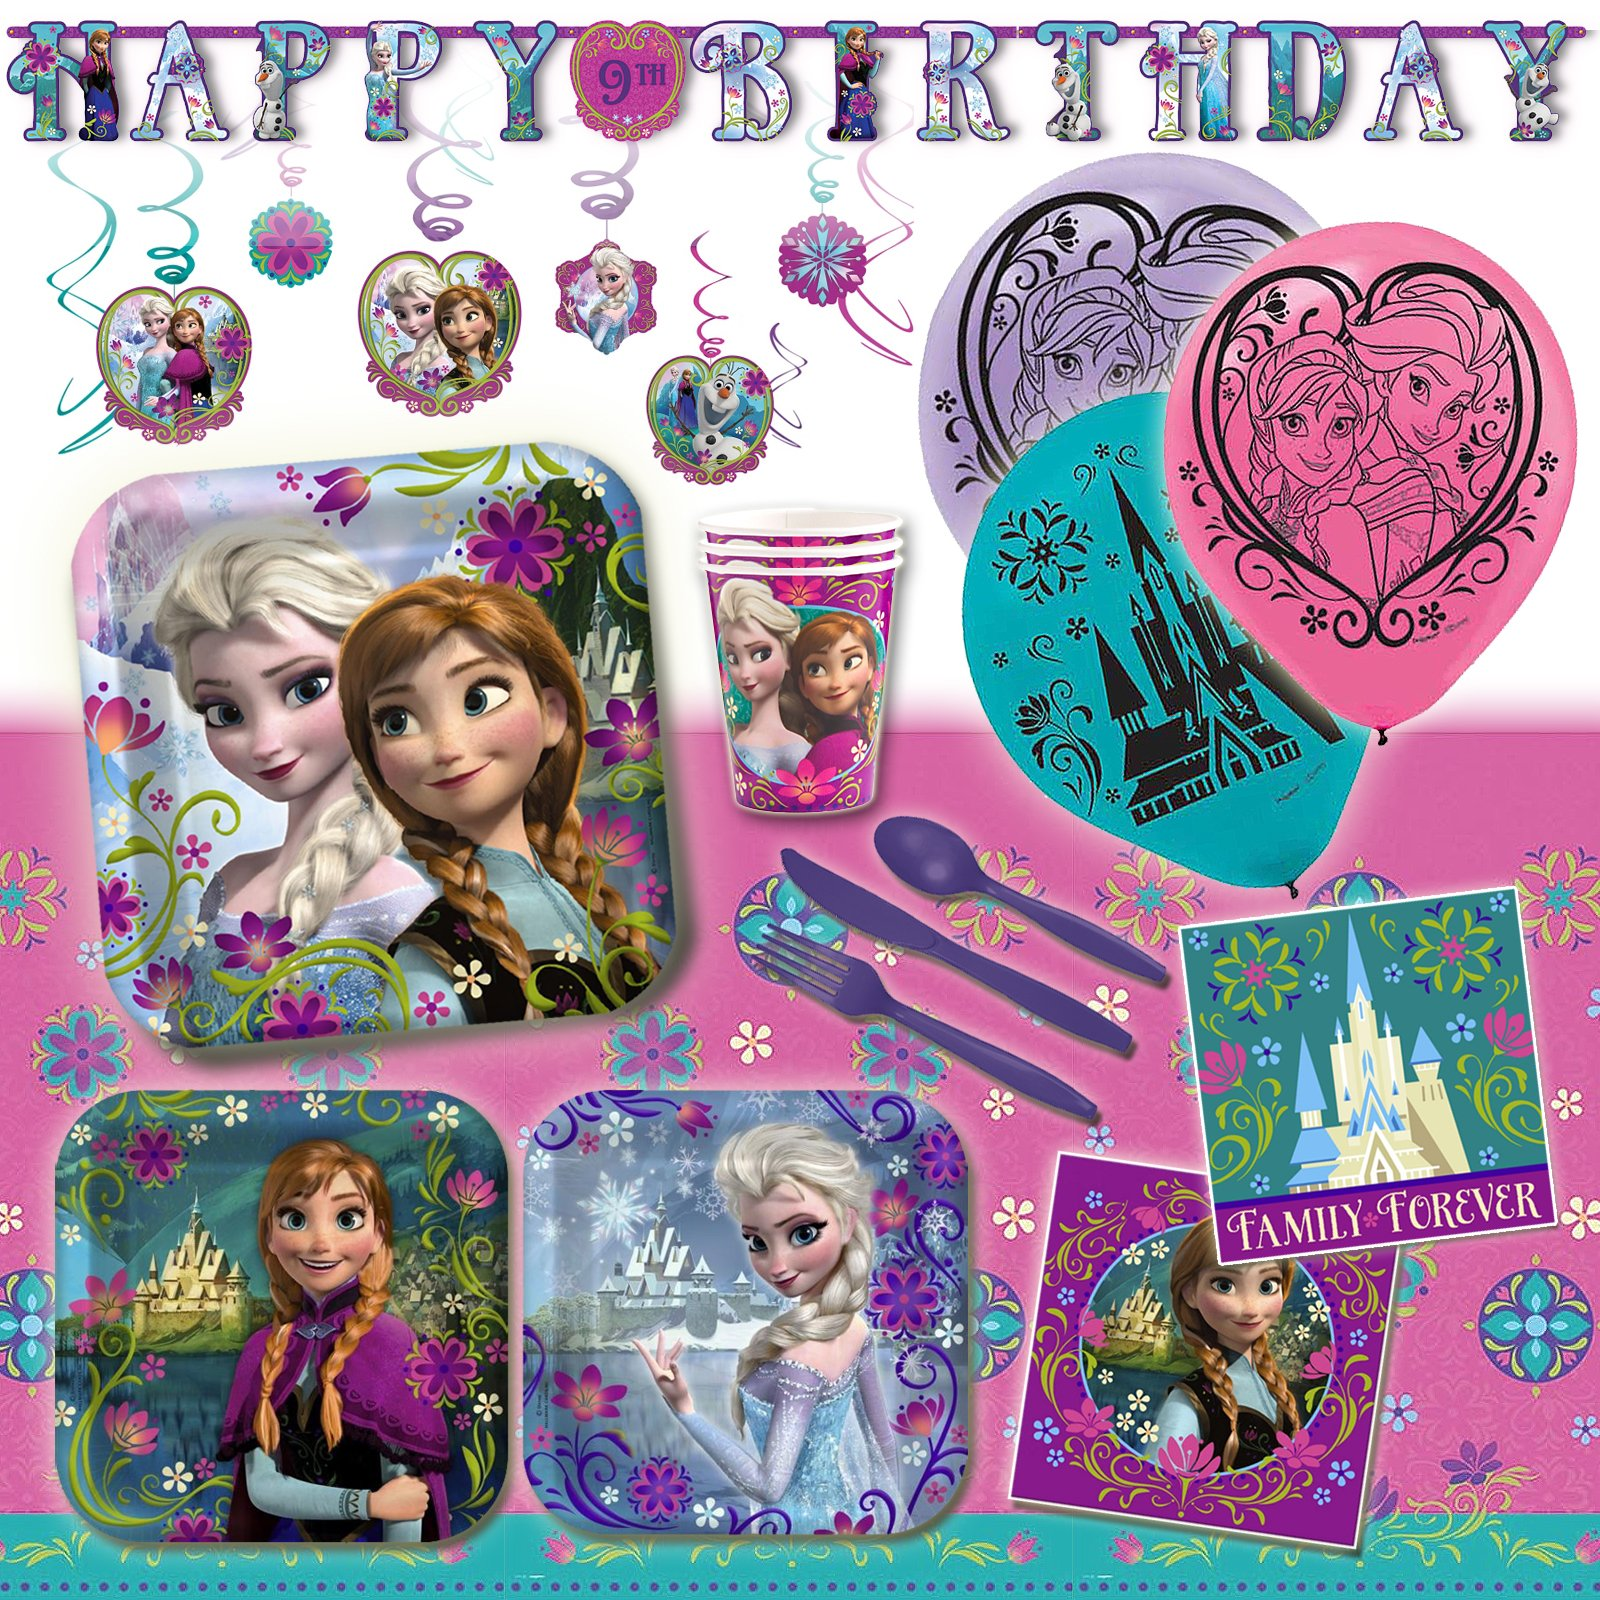 Deluxe Disney Frozen Sisters Birthday Party Pack Decoration Kit For 16 by Disney